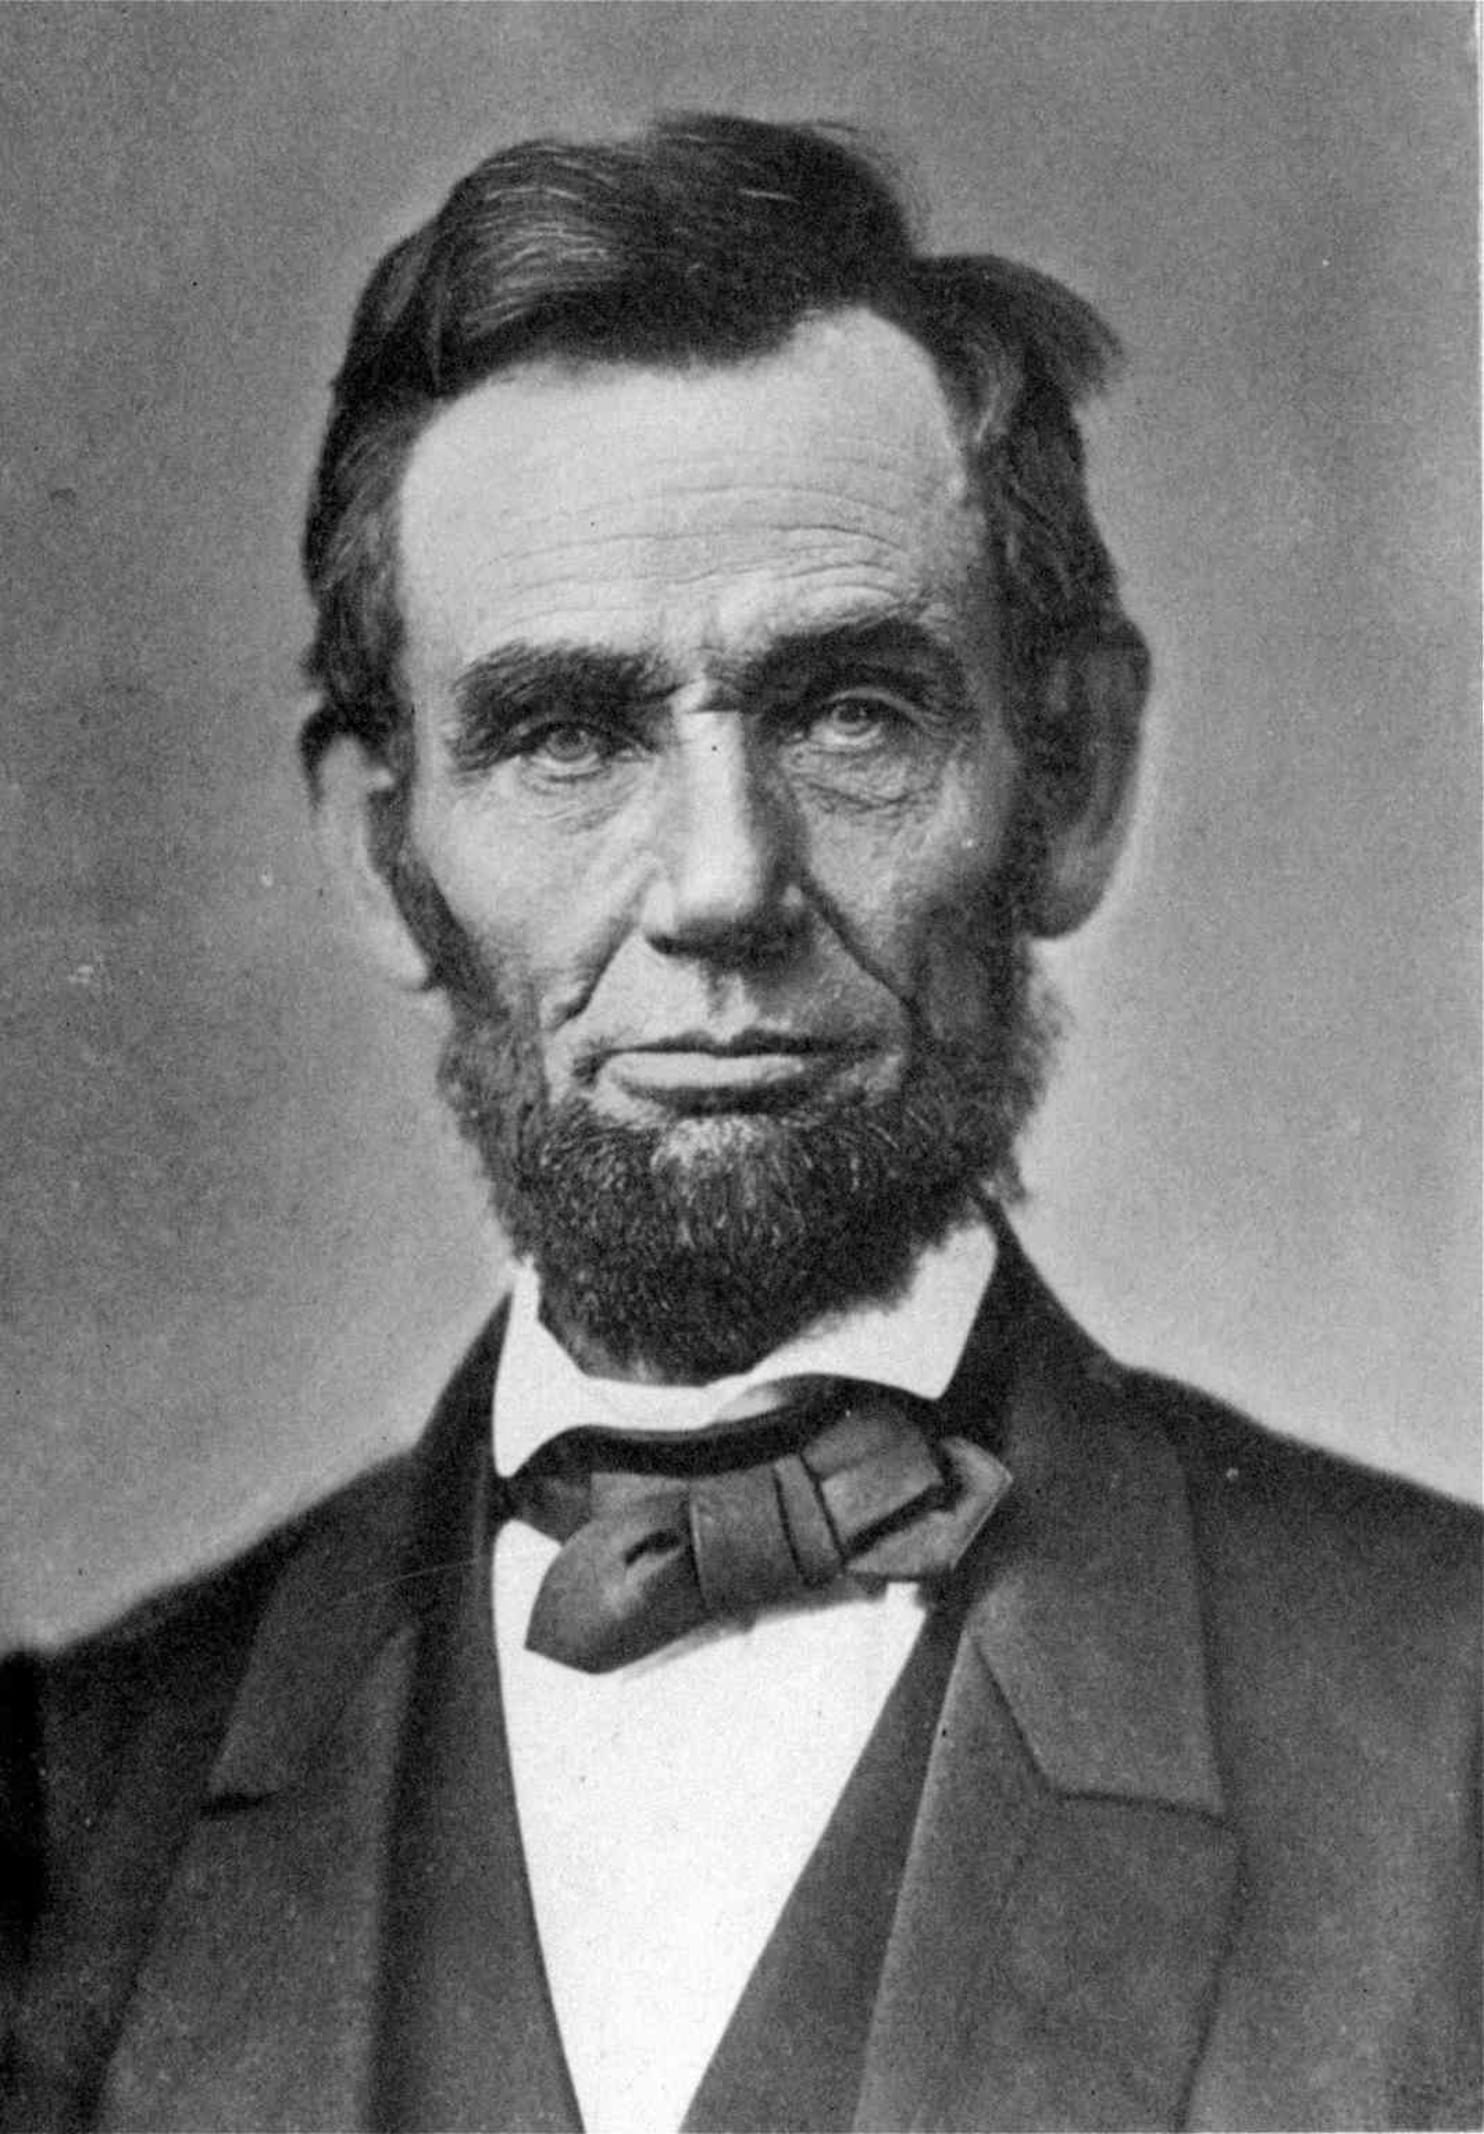 Gettysburg Address Anniversary To Include Parade And Balls